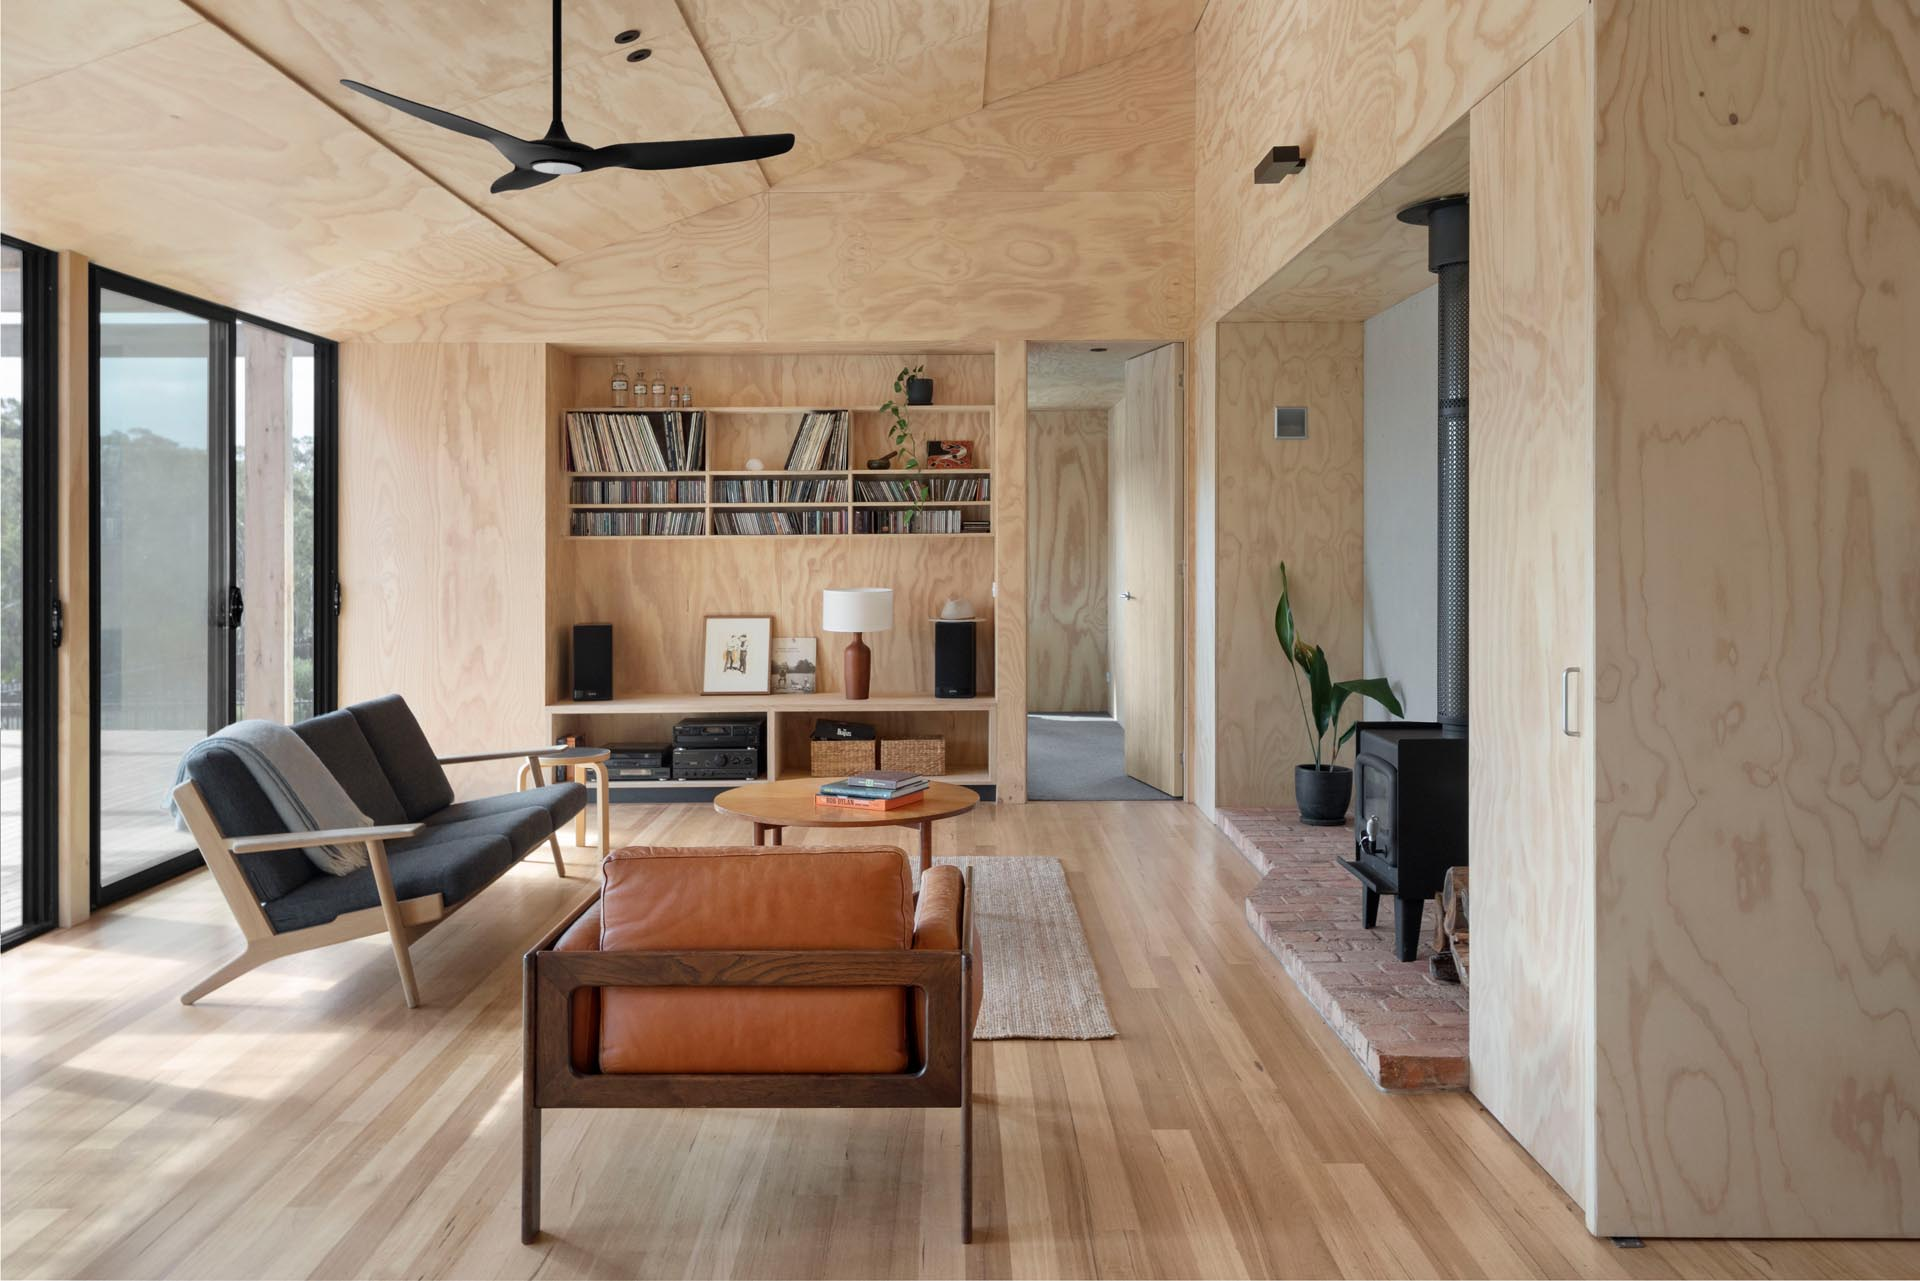 The interior of this home has been lined with plywood sheets, designed to age gracefully instead of repainting in the future.